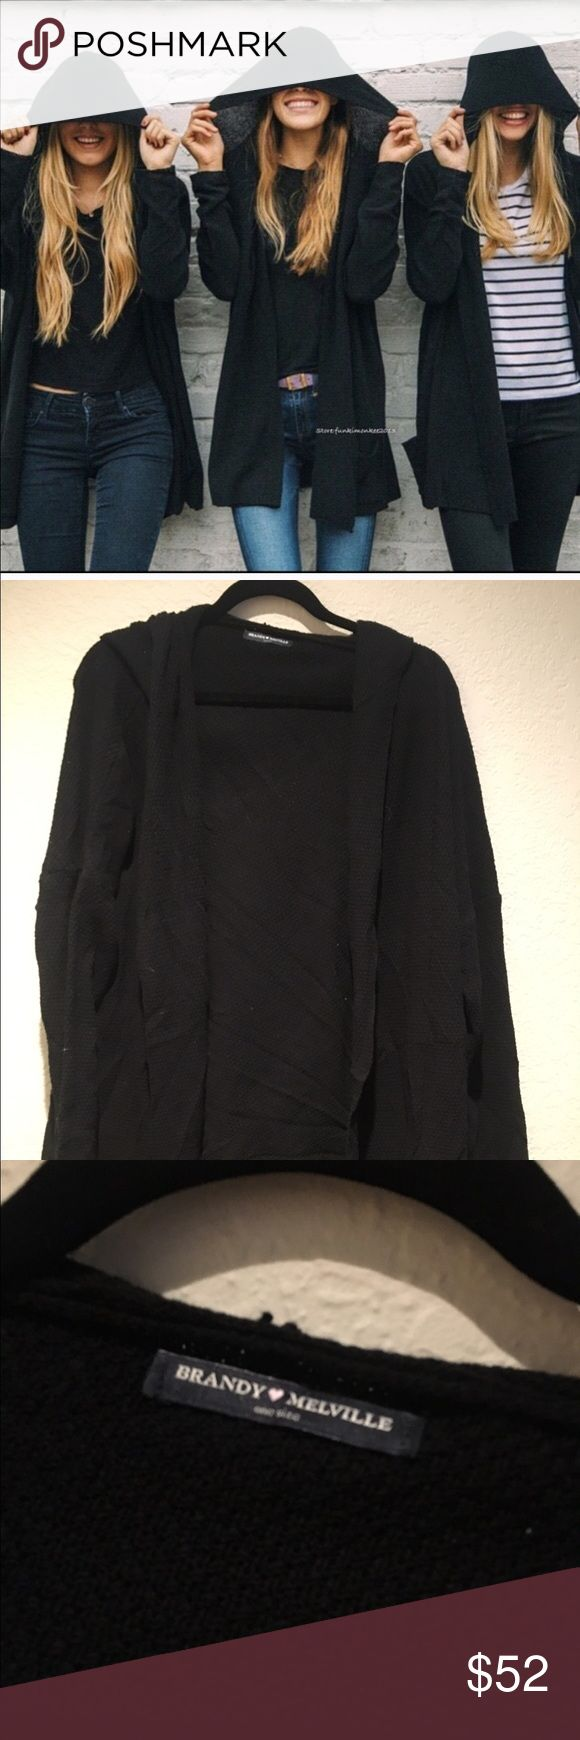 Brandy Melville black knit hood cardigan Brandy Melville black knit hood cardigan worn once, great condition Brandy Melville Sweaters Cardigans